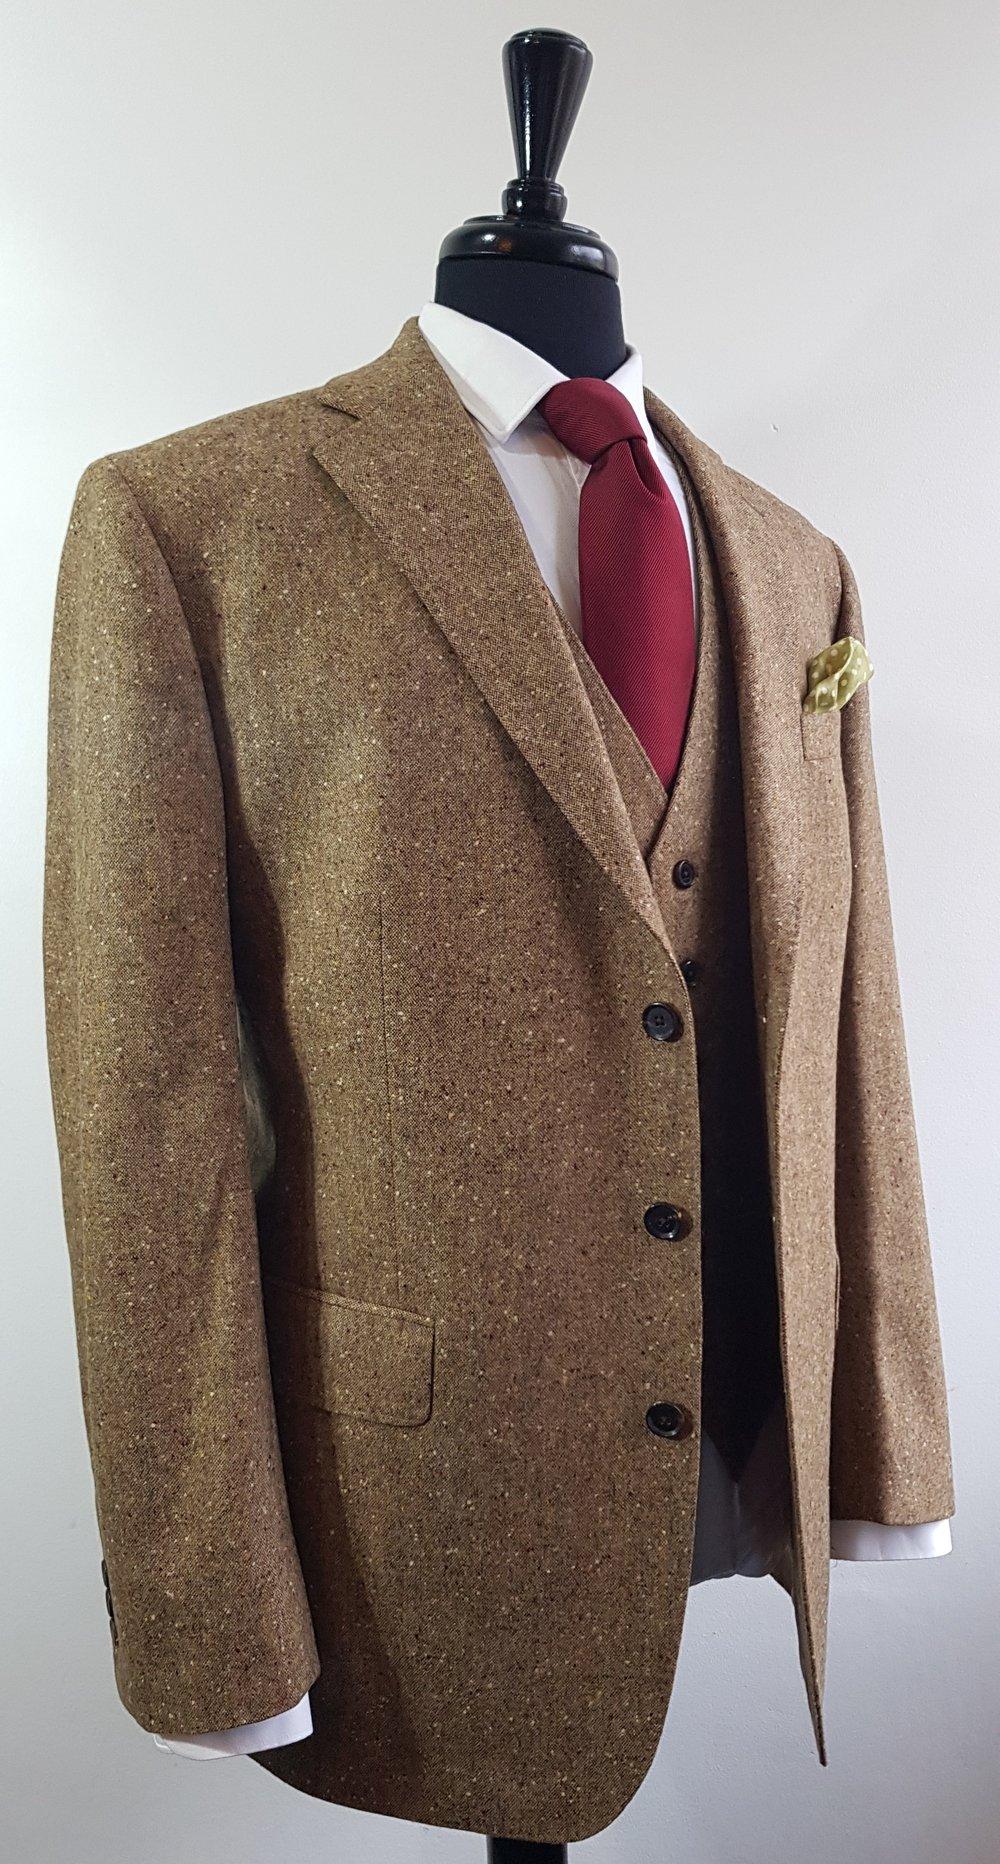 Brown Donegal 3 piece tweed suit (8).jpg